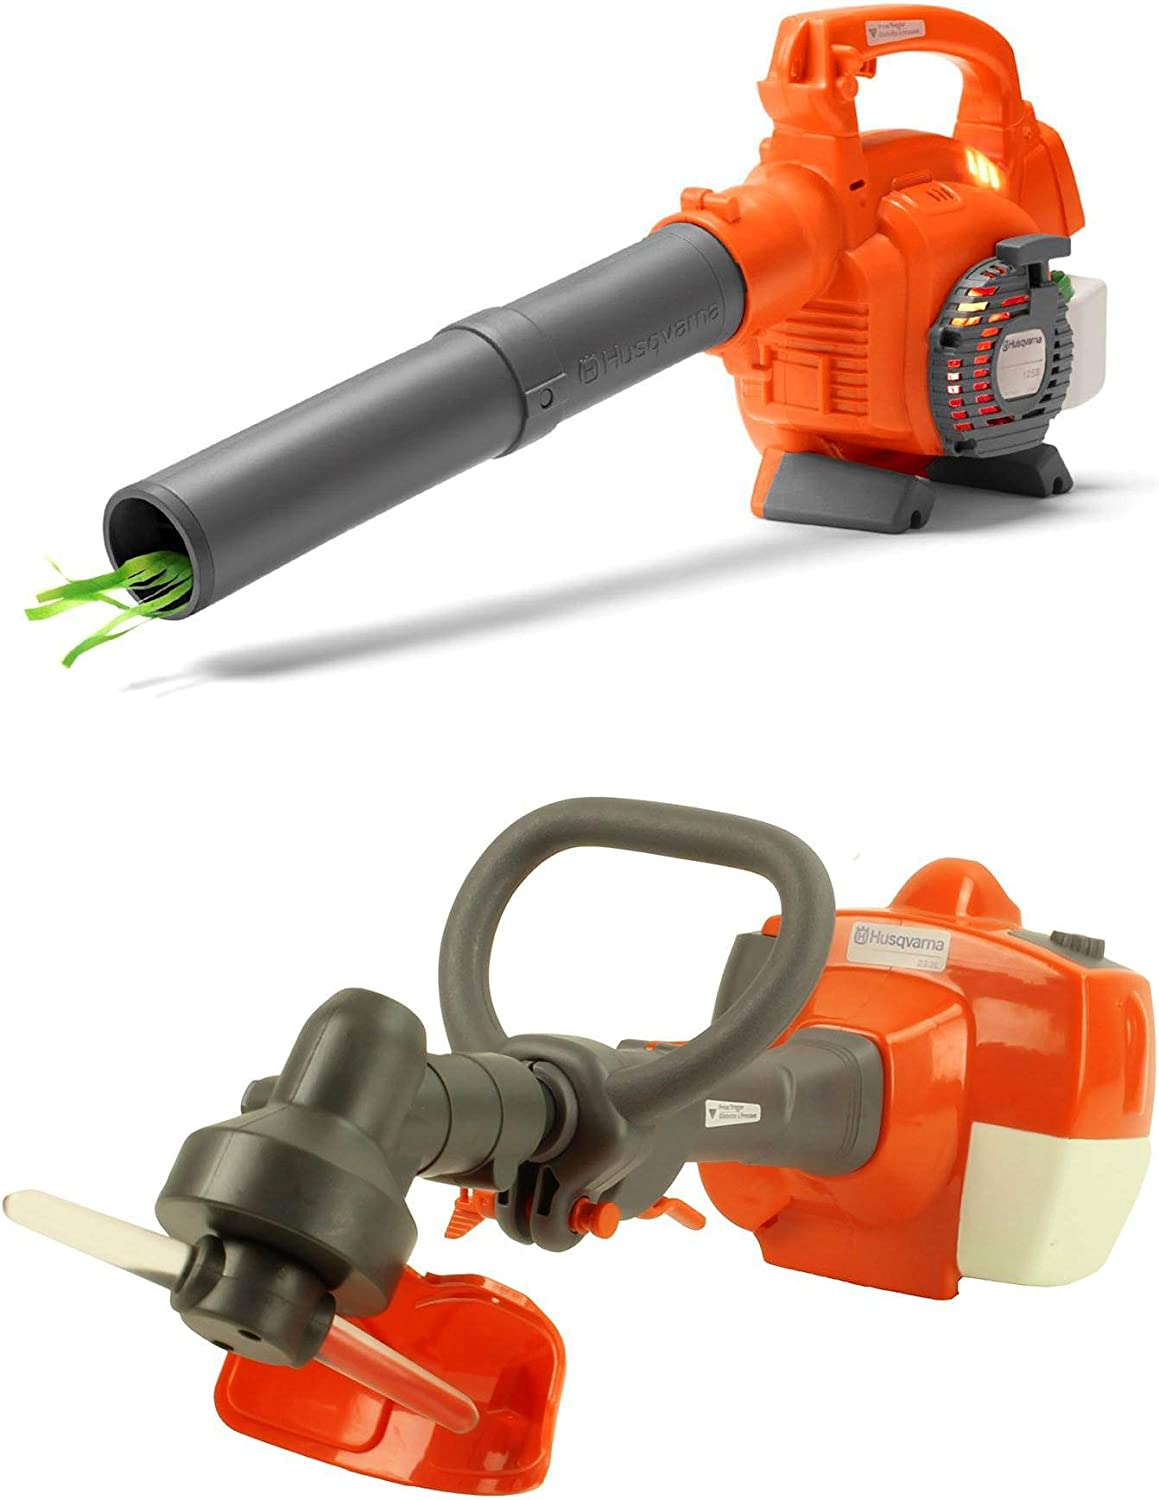 Husqvarna Kids Battery Operated Toy Leaf Blower Toy Lawn Weed Trimmer w Sound